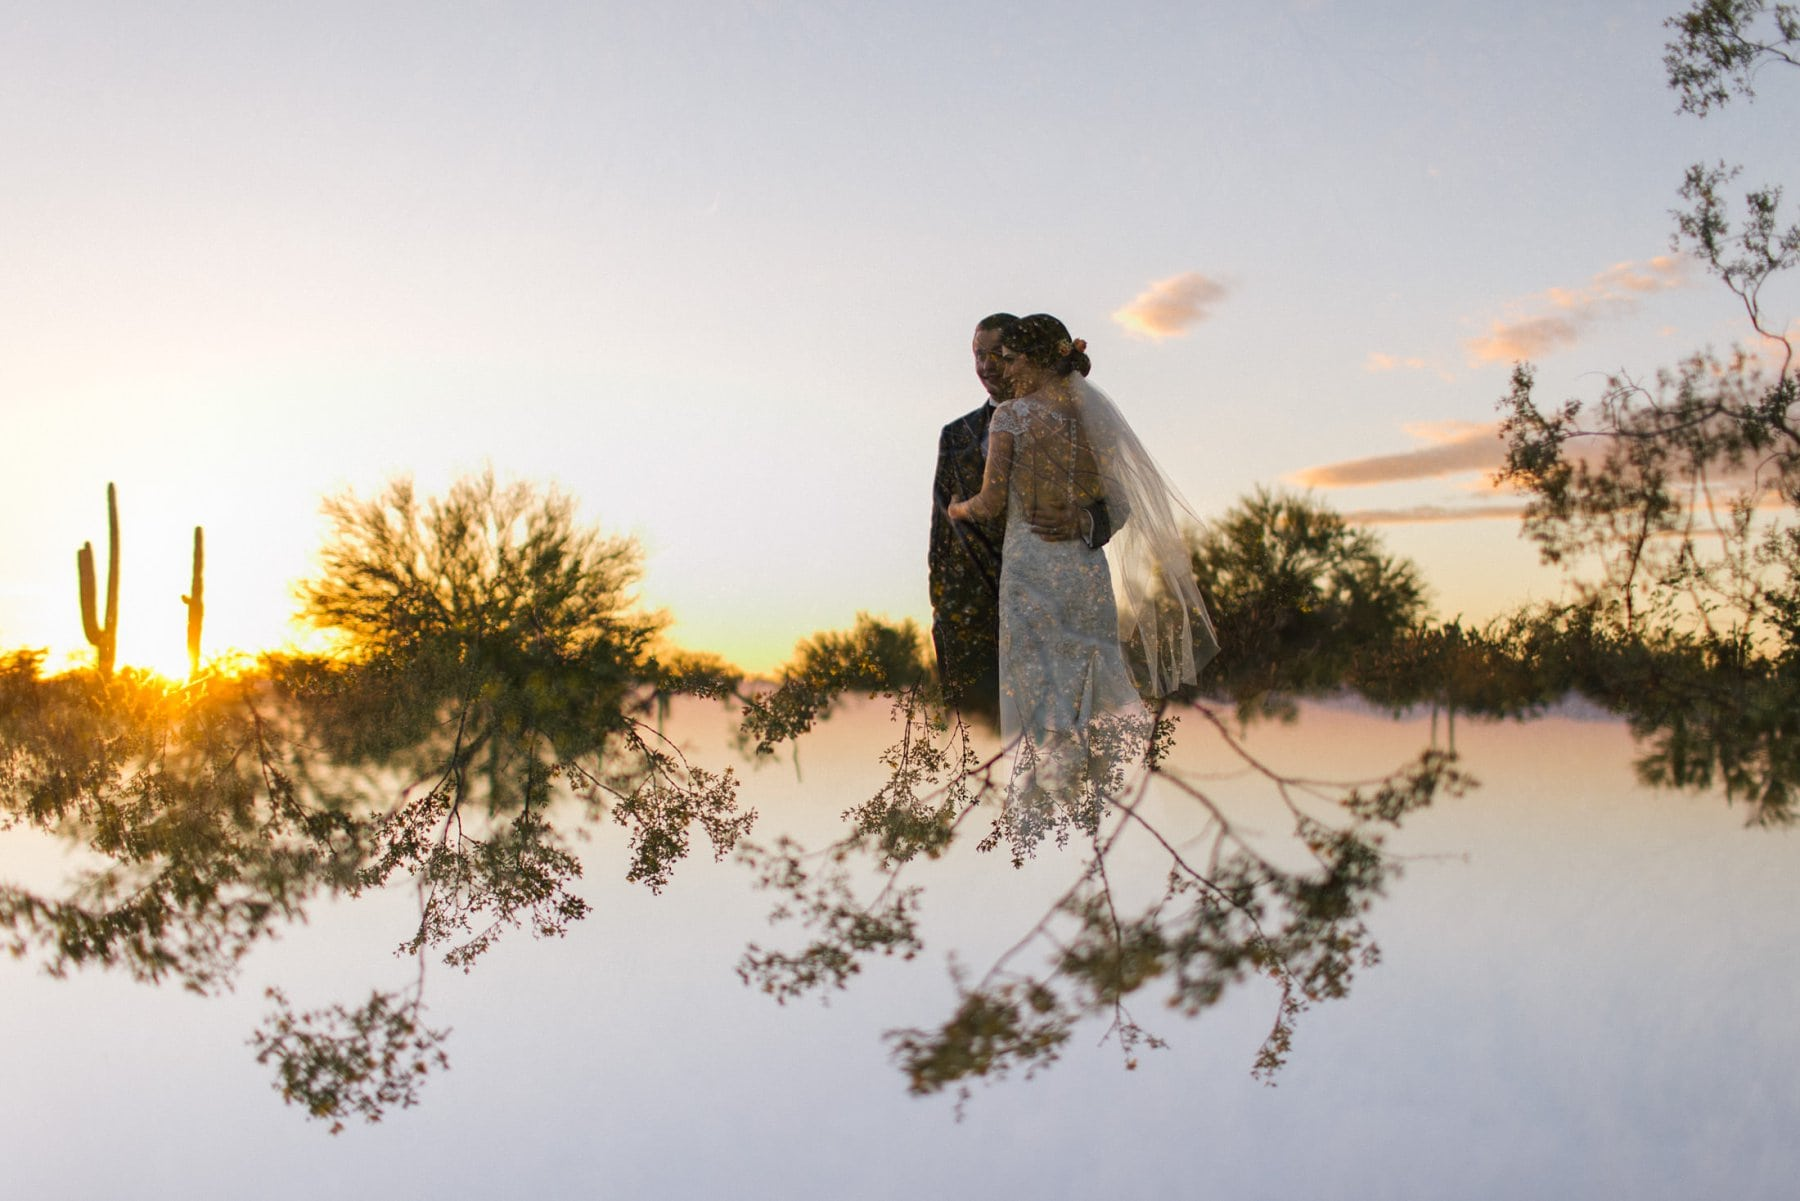 artistic creative bride & groom photos Arizona double exposure at sunset